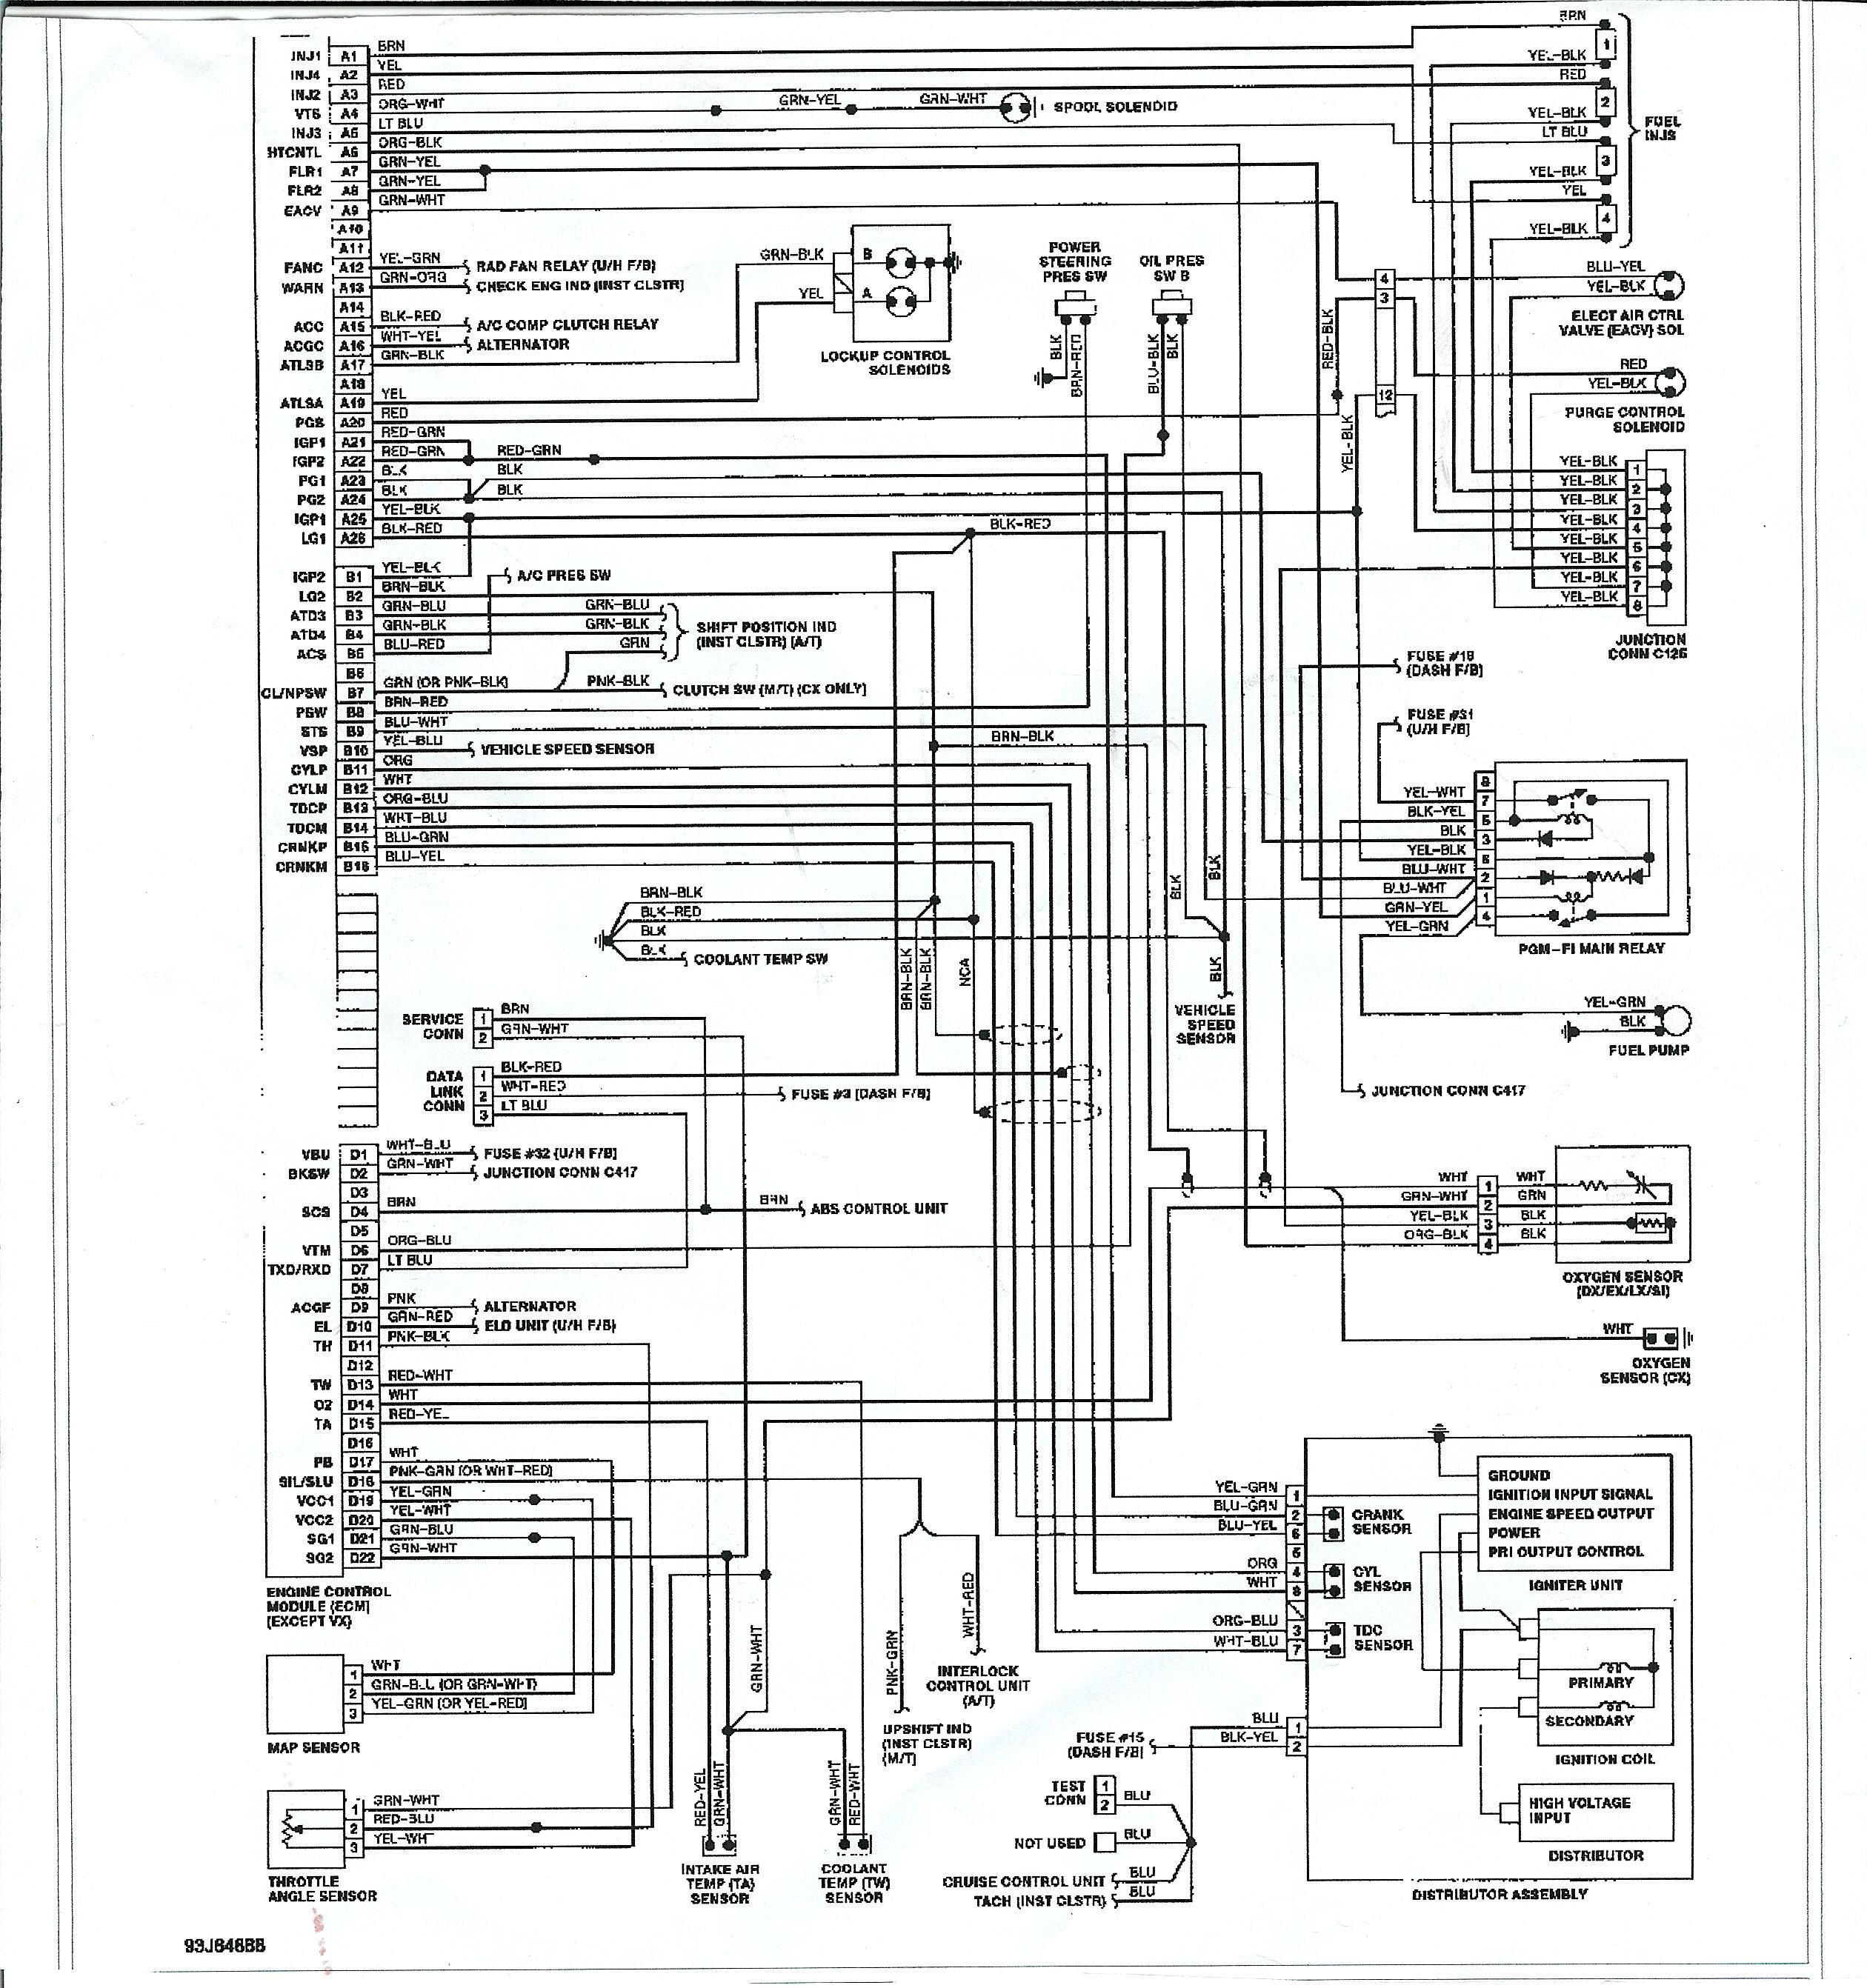 honda civic 2005 engine diagram k20 swap to a 95 civic hatch honda rh  detoxicrecenze com 92-95 civic engine harness diagram 95 civic engine  harness diagram